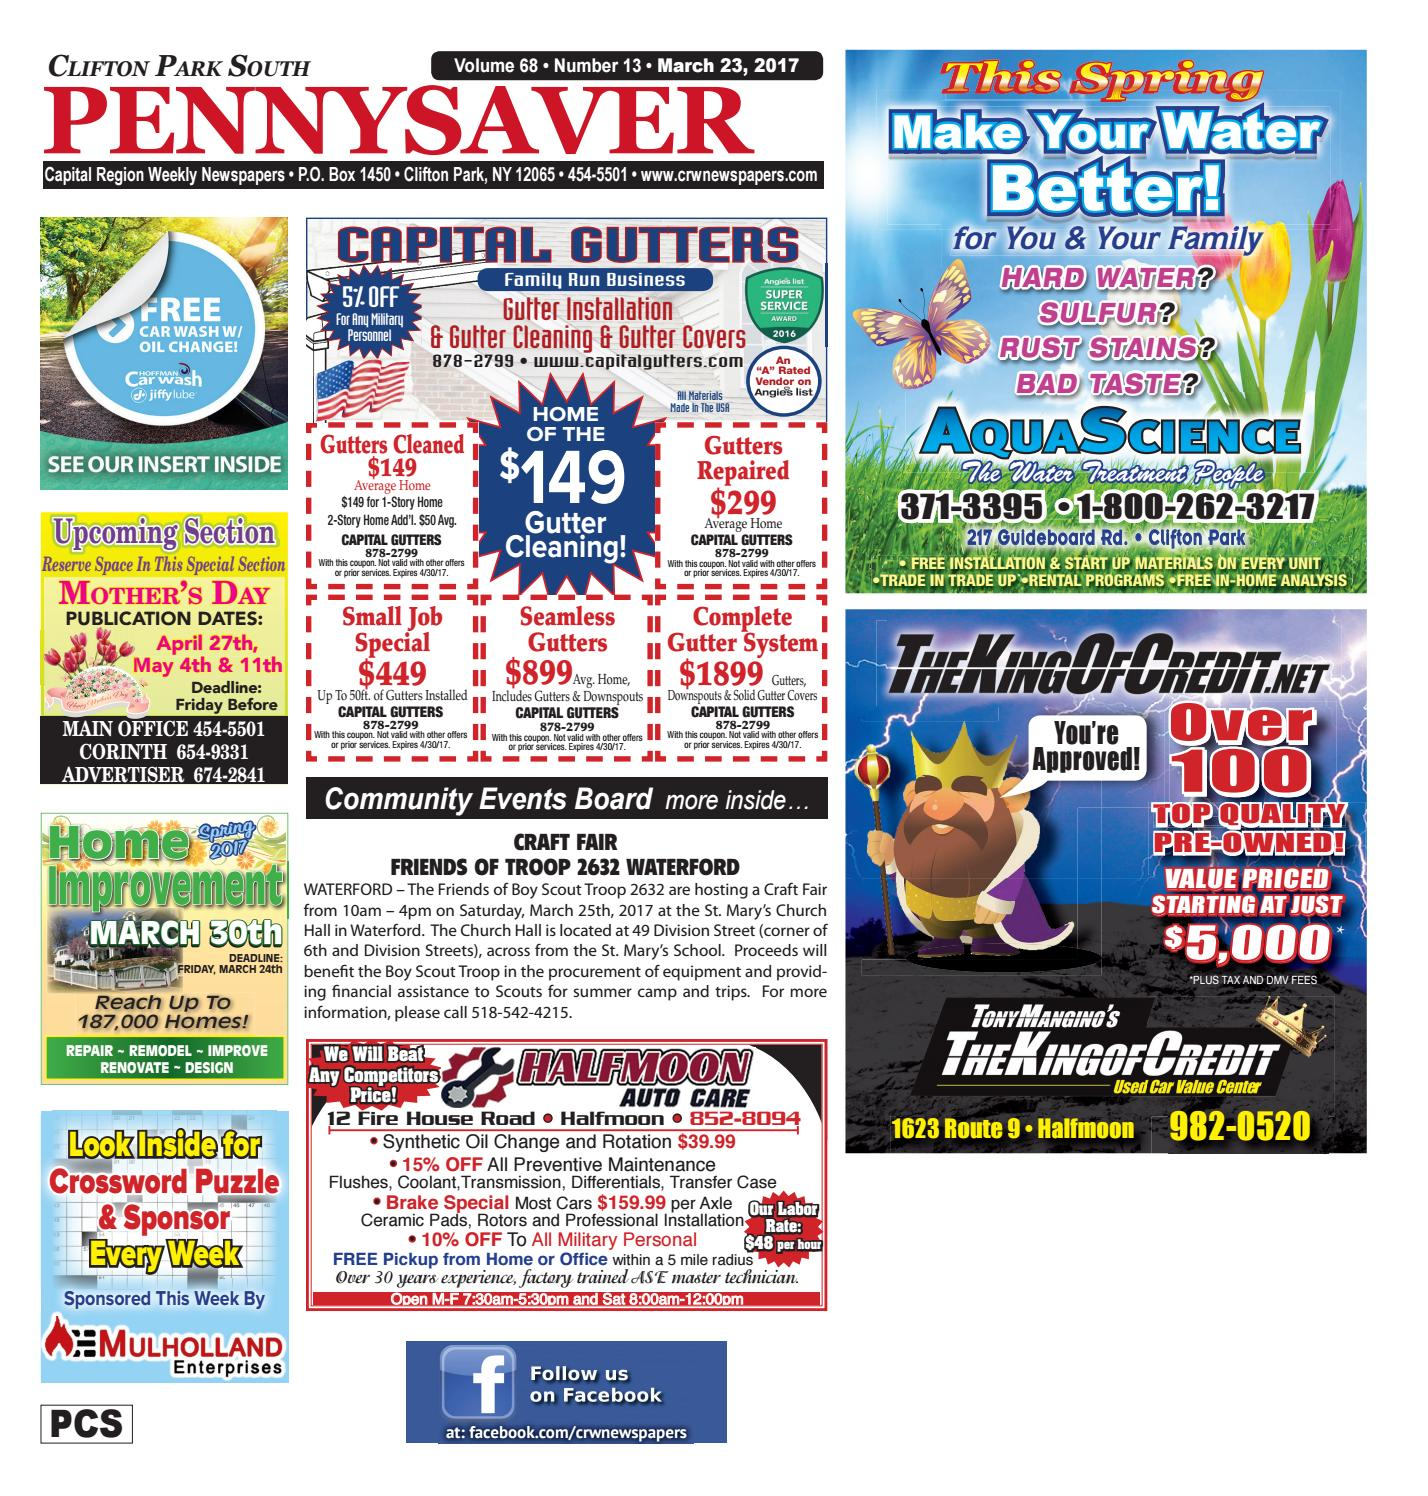 Clifton Park South Pennysaver 032317 By Capital Region